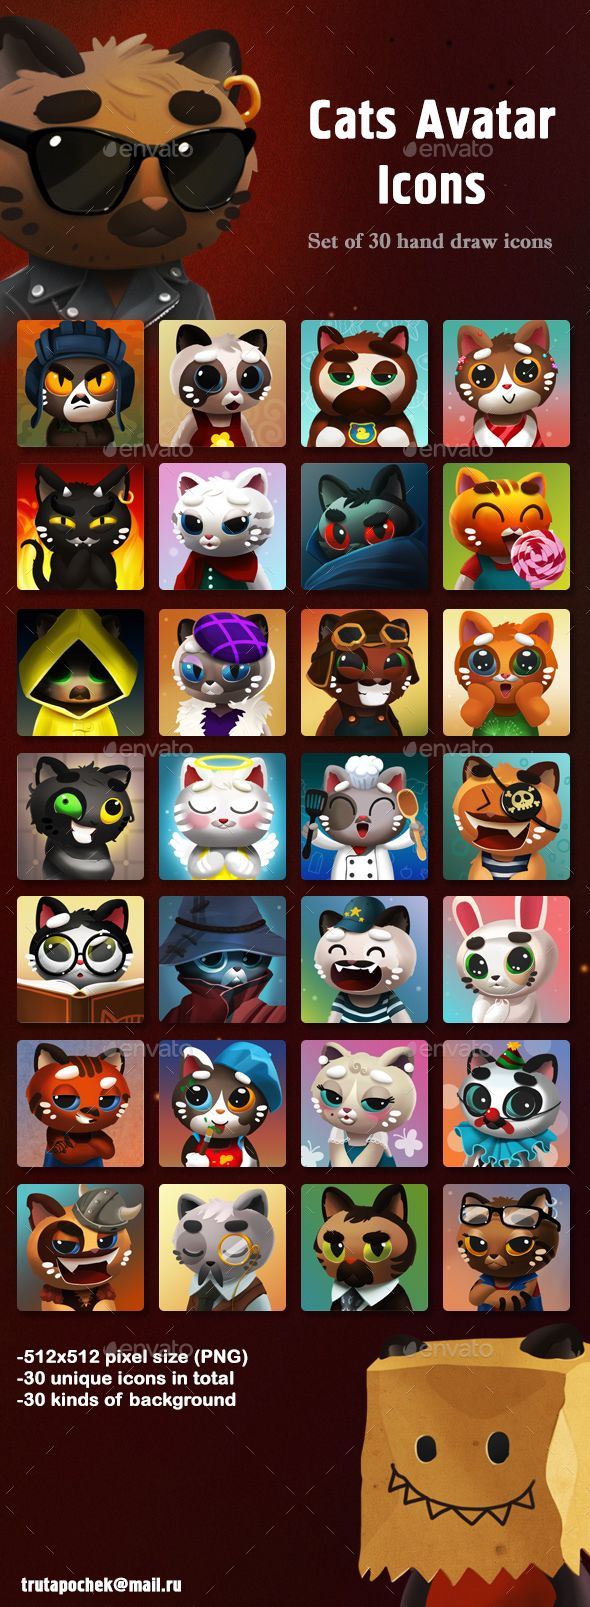 Cats Avatar Icons - Miscellaneous Game Assets | Download: https://graphicriver.net/item/cats-avatar-icons/19973197?ref=sinzo #game #assets